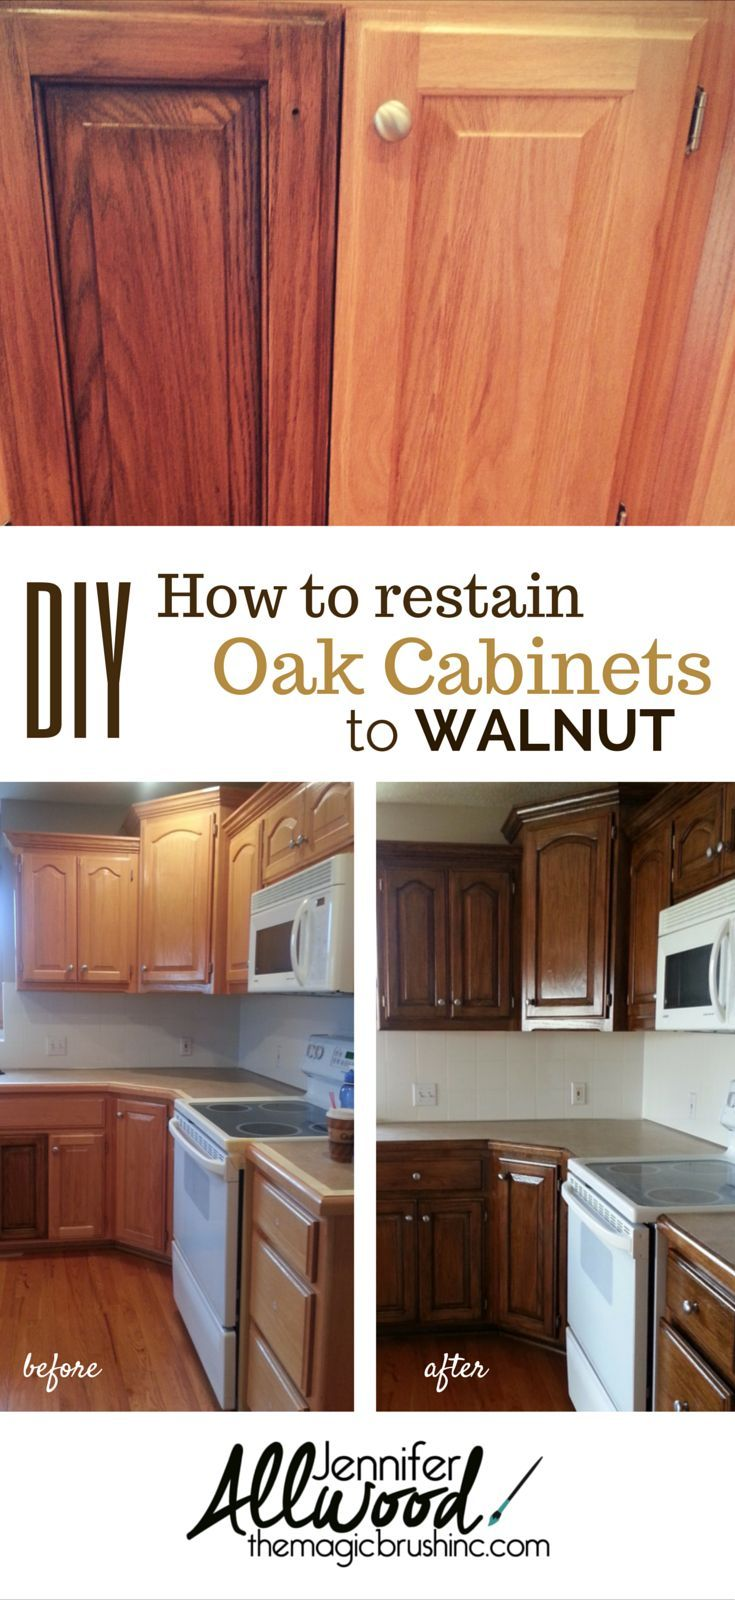 Refinish Cabinet Kit Cabinets And Furniture Finishes Stains Cabinets And Staining